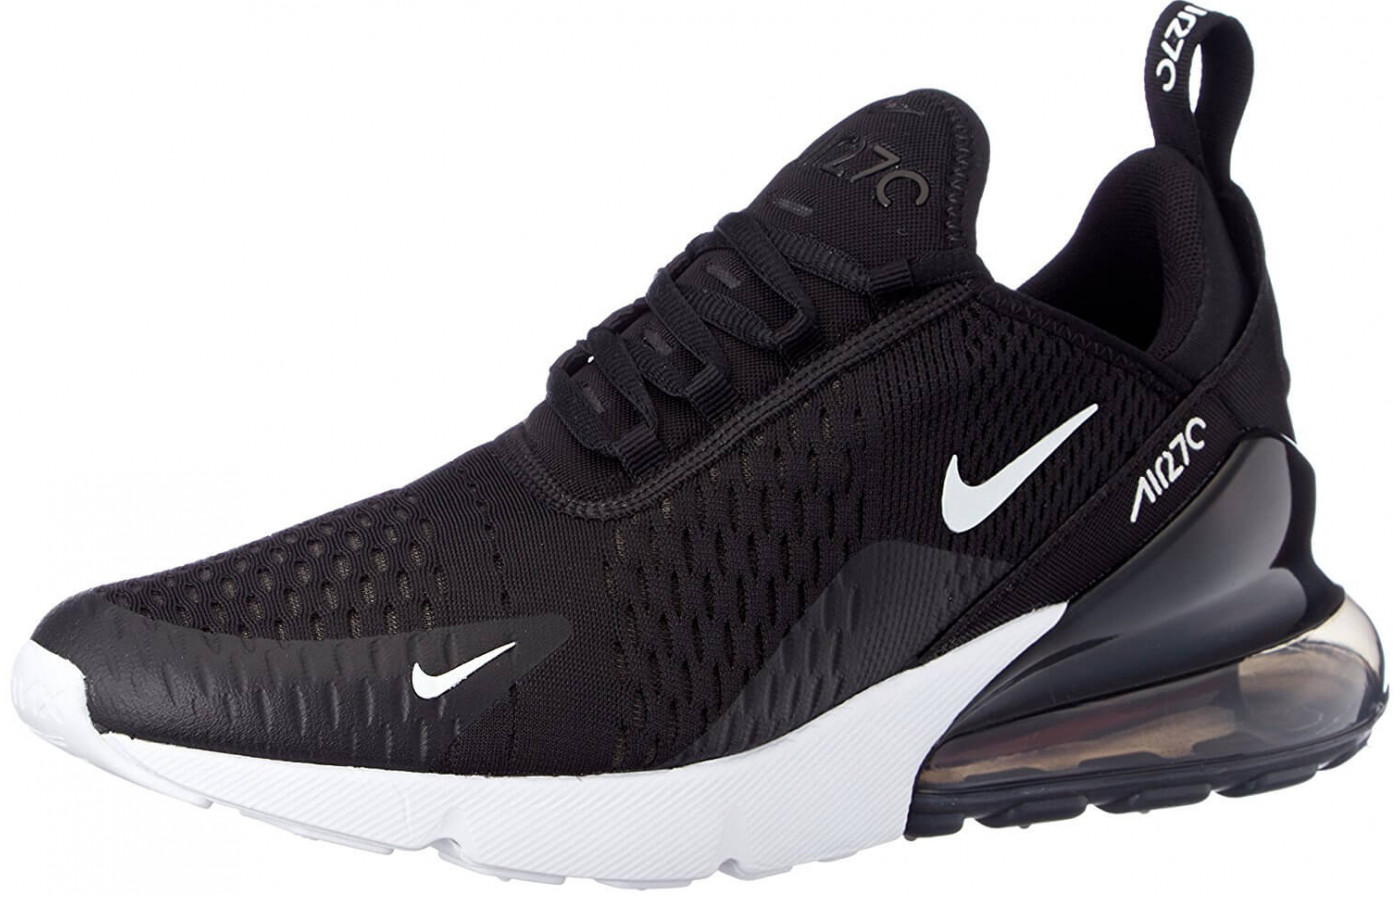 53c744a927 Nike Air Max 270. Mesh upper and 270 degrees of Air ...